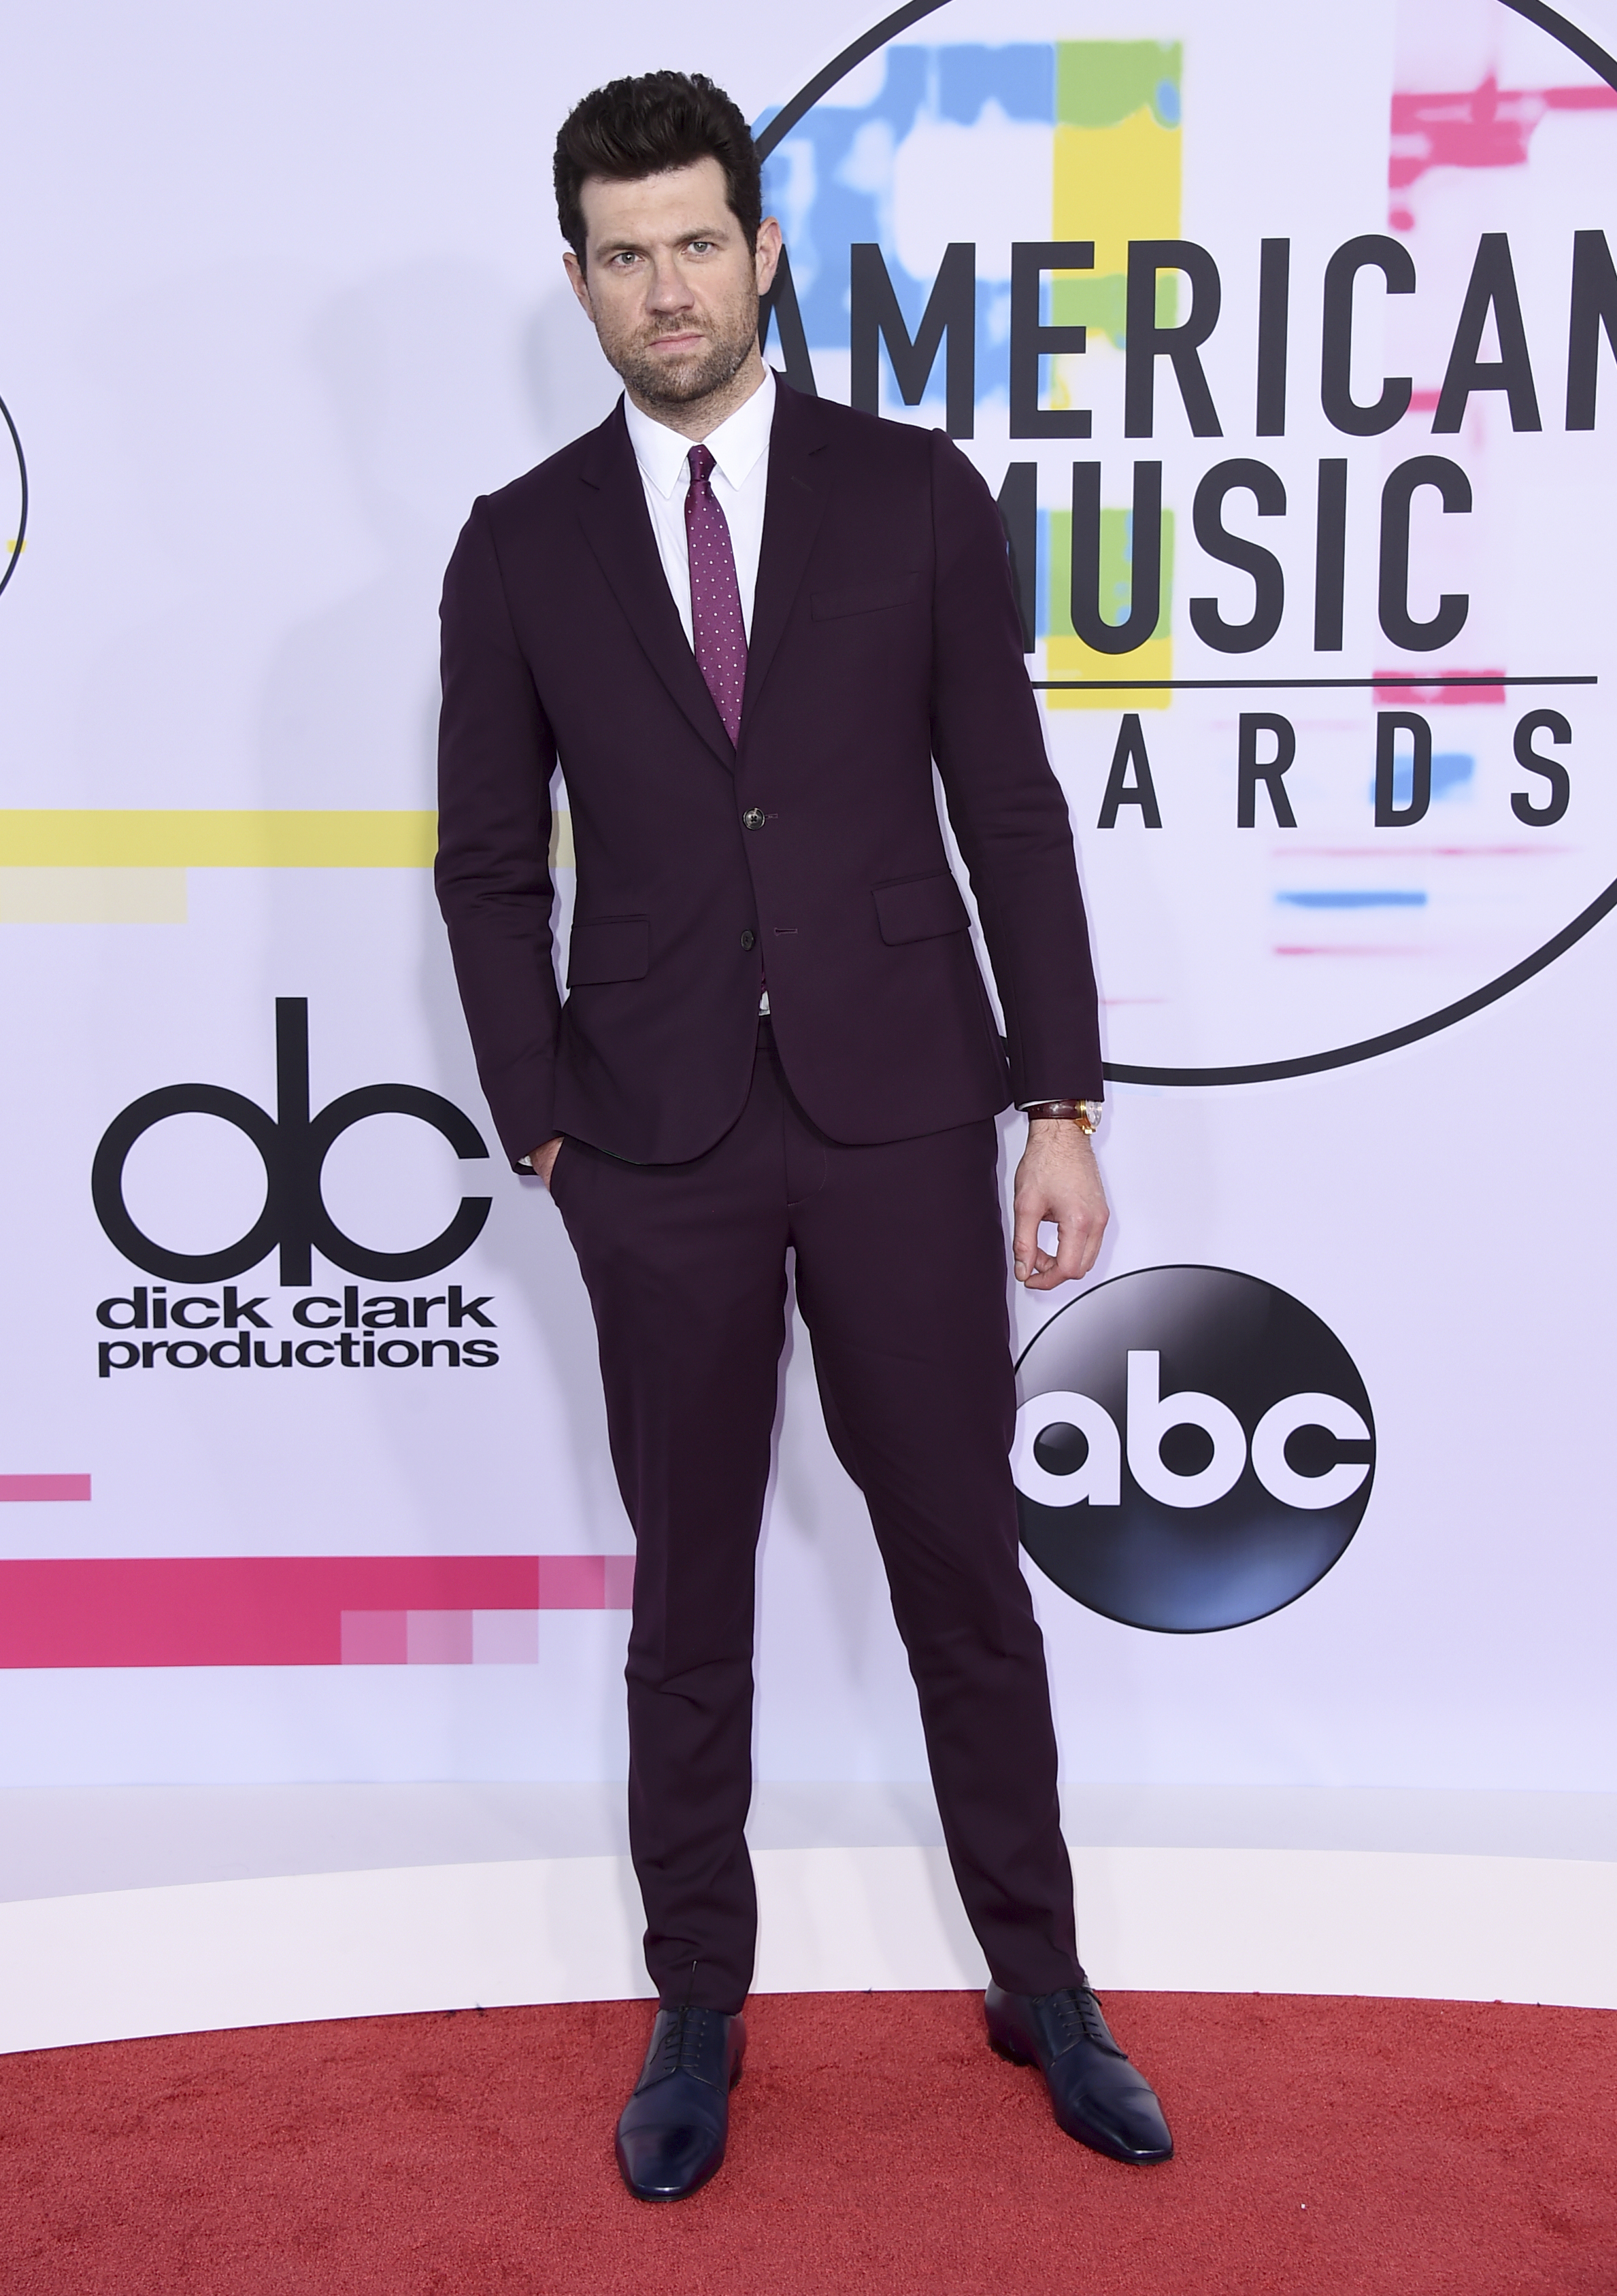 <div class='meta'><div class='origin-logo' data-origin='none'></div><span class='caption-text' data-credit='Jordan Strauss/Invision/AP'>Billy Eichner arrives at the American Music Awards at the Microsoft Theater on Sunday, Nov. 19, 2017, in Los Angeles.</span></div>